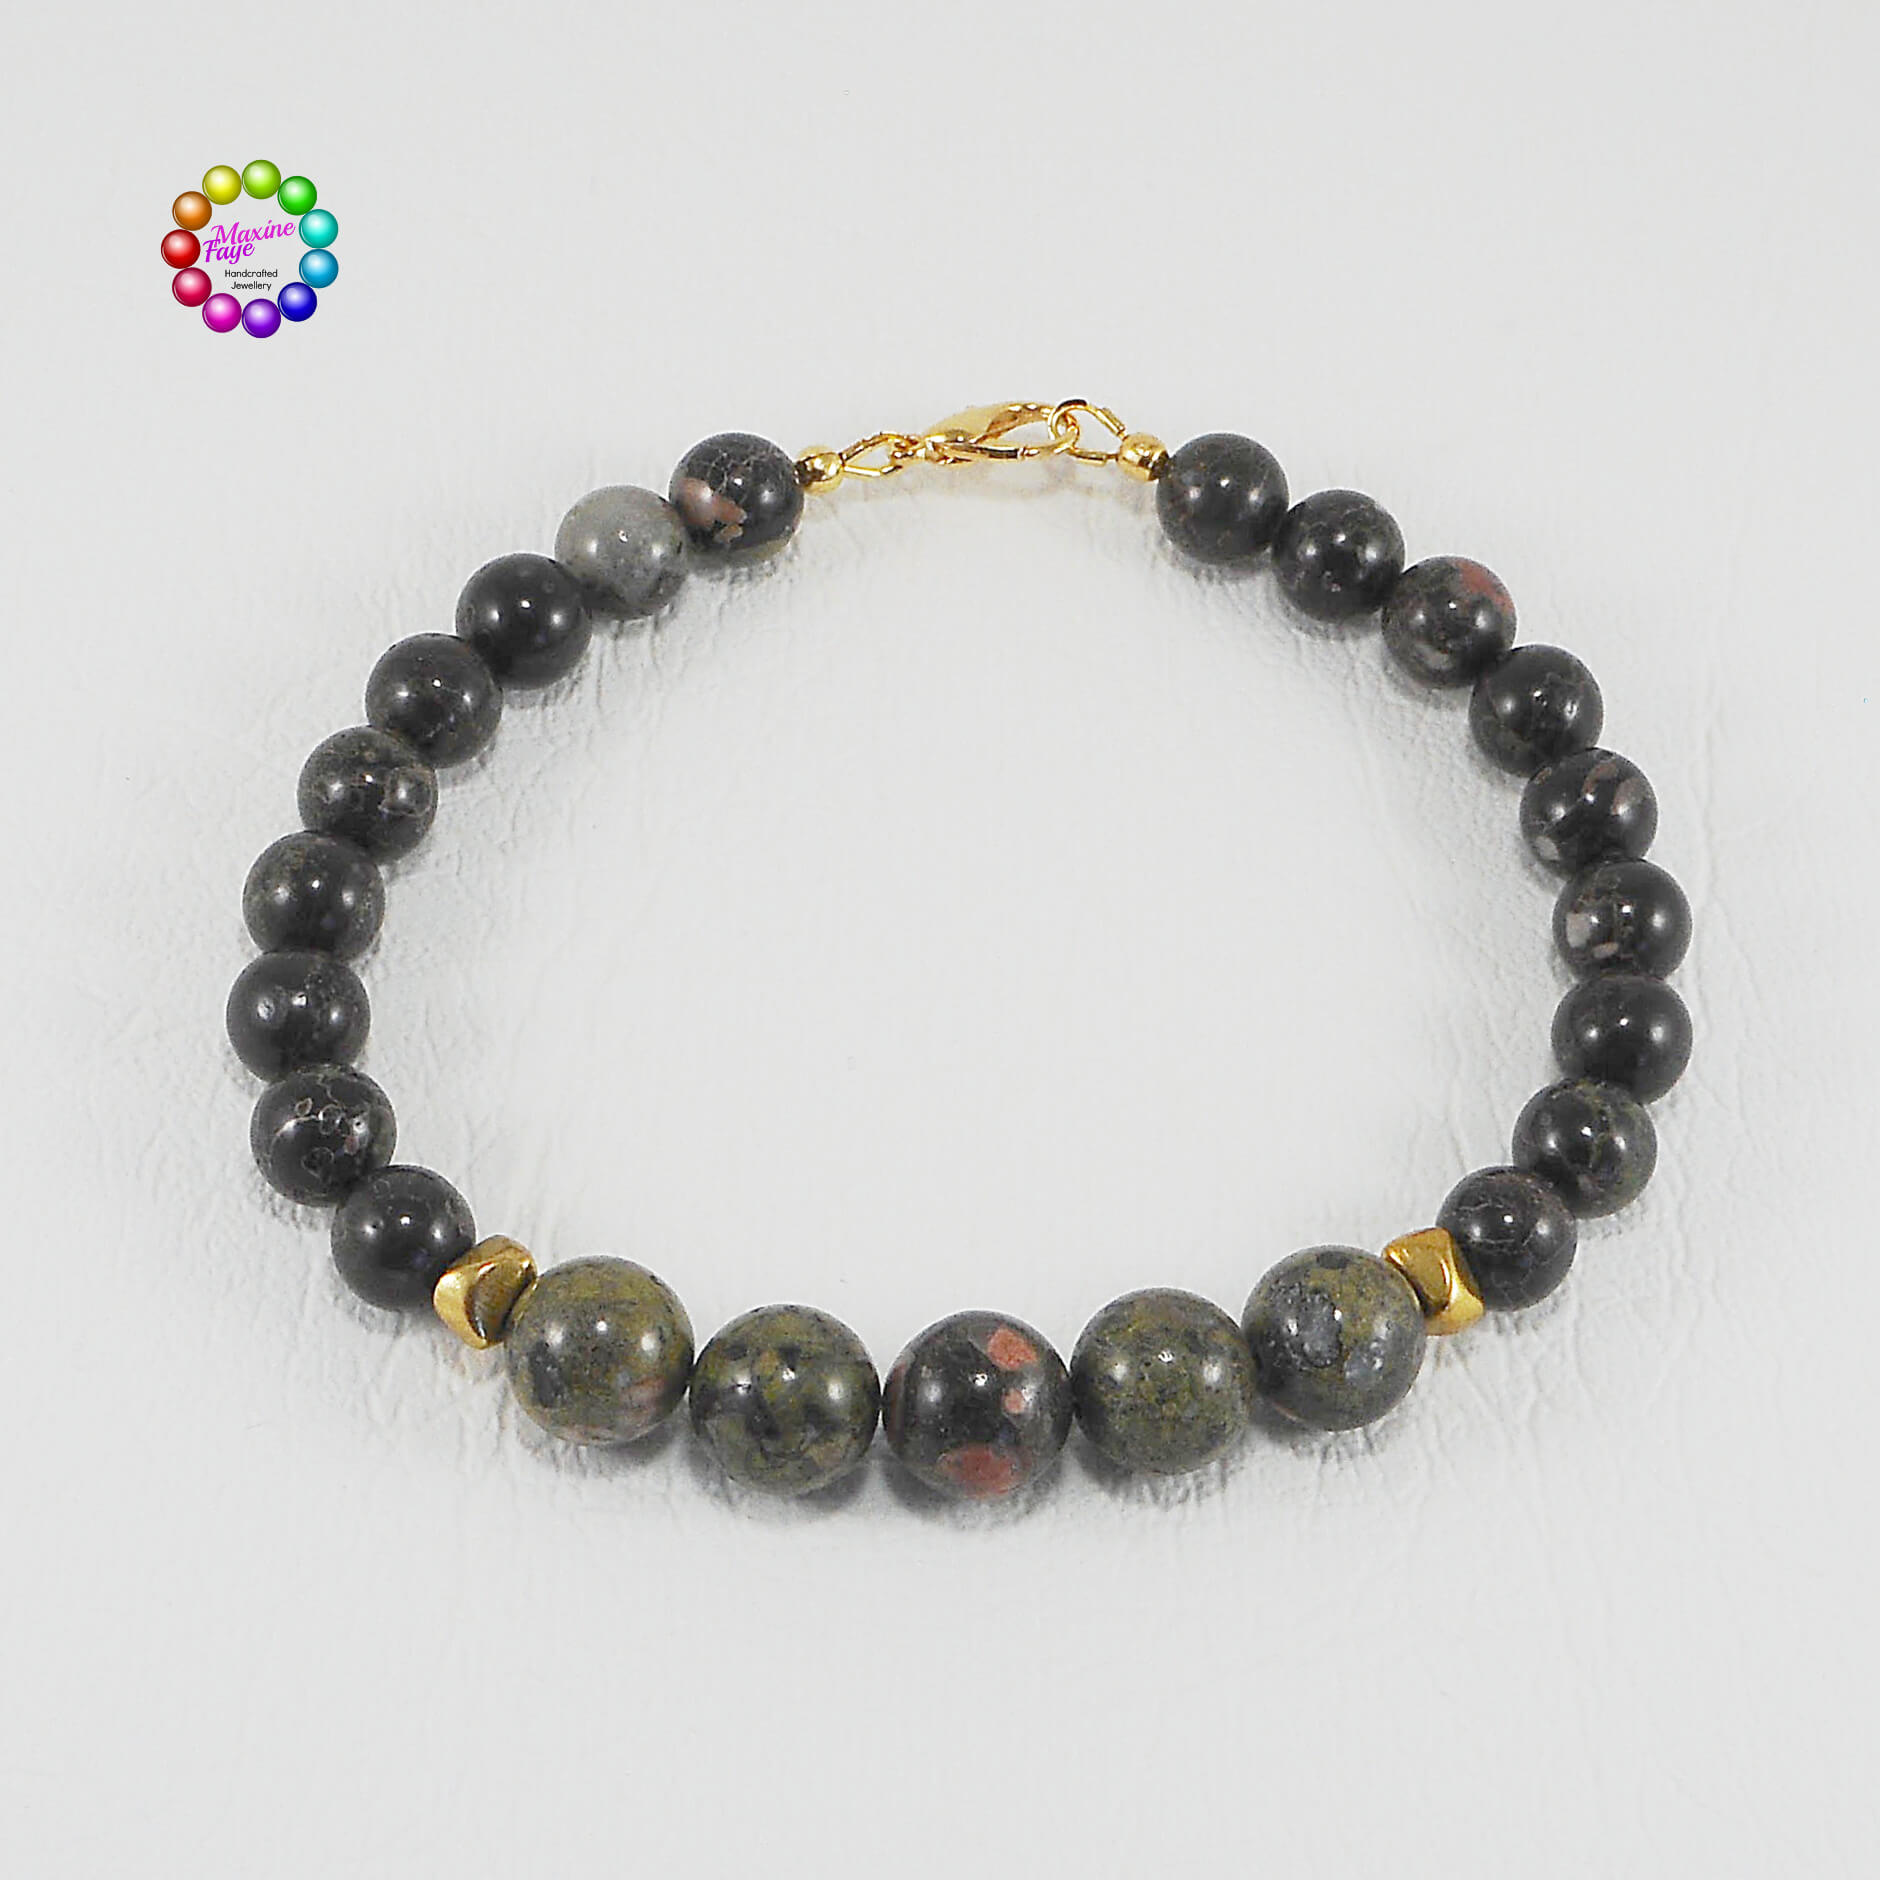 The beautiful earthy colours of the two sizes of natural Sunset Jasper gemstones in this bracelet are separated by 2 brass triangular nugget shaped beads.